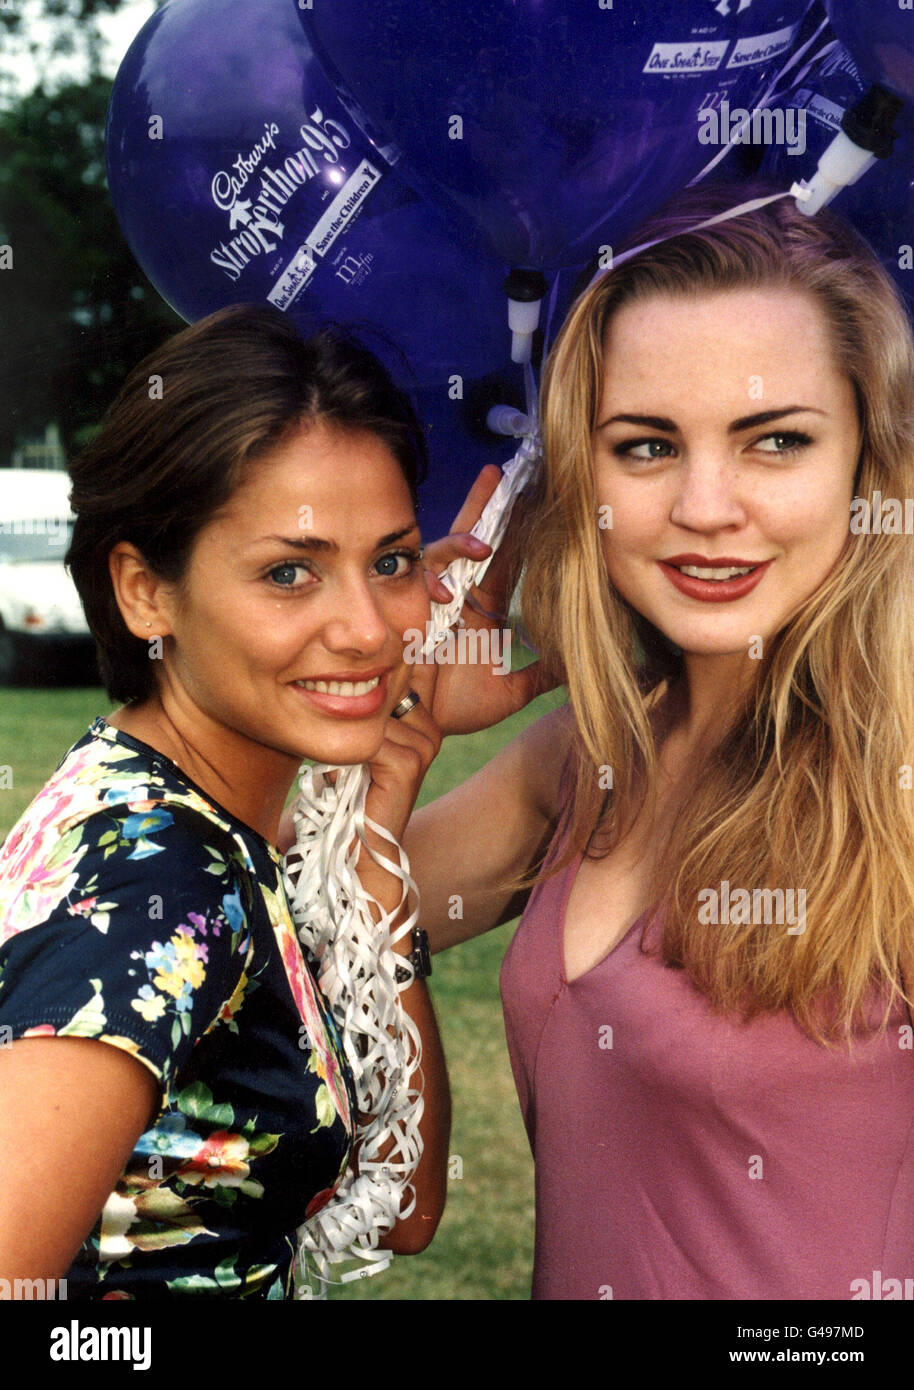 PA NEWS PHOTO 16/7/95  NATALIE IMBRUGLIA AND MELISSA GEORGE LAUNCHING THE 1995 CADBURY'S STROLLERTHON IN CENTRAL - Stock Image